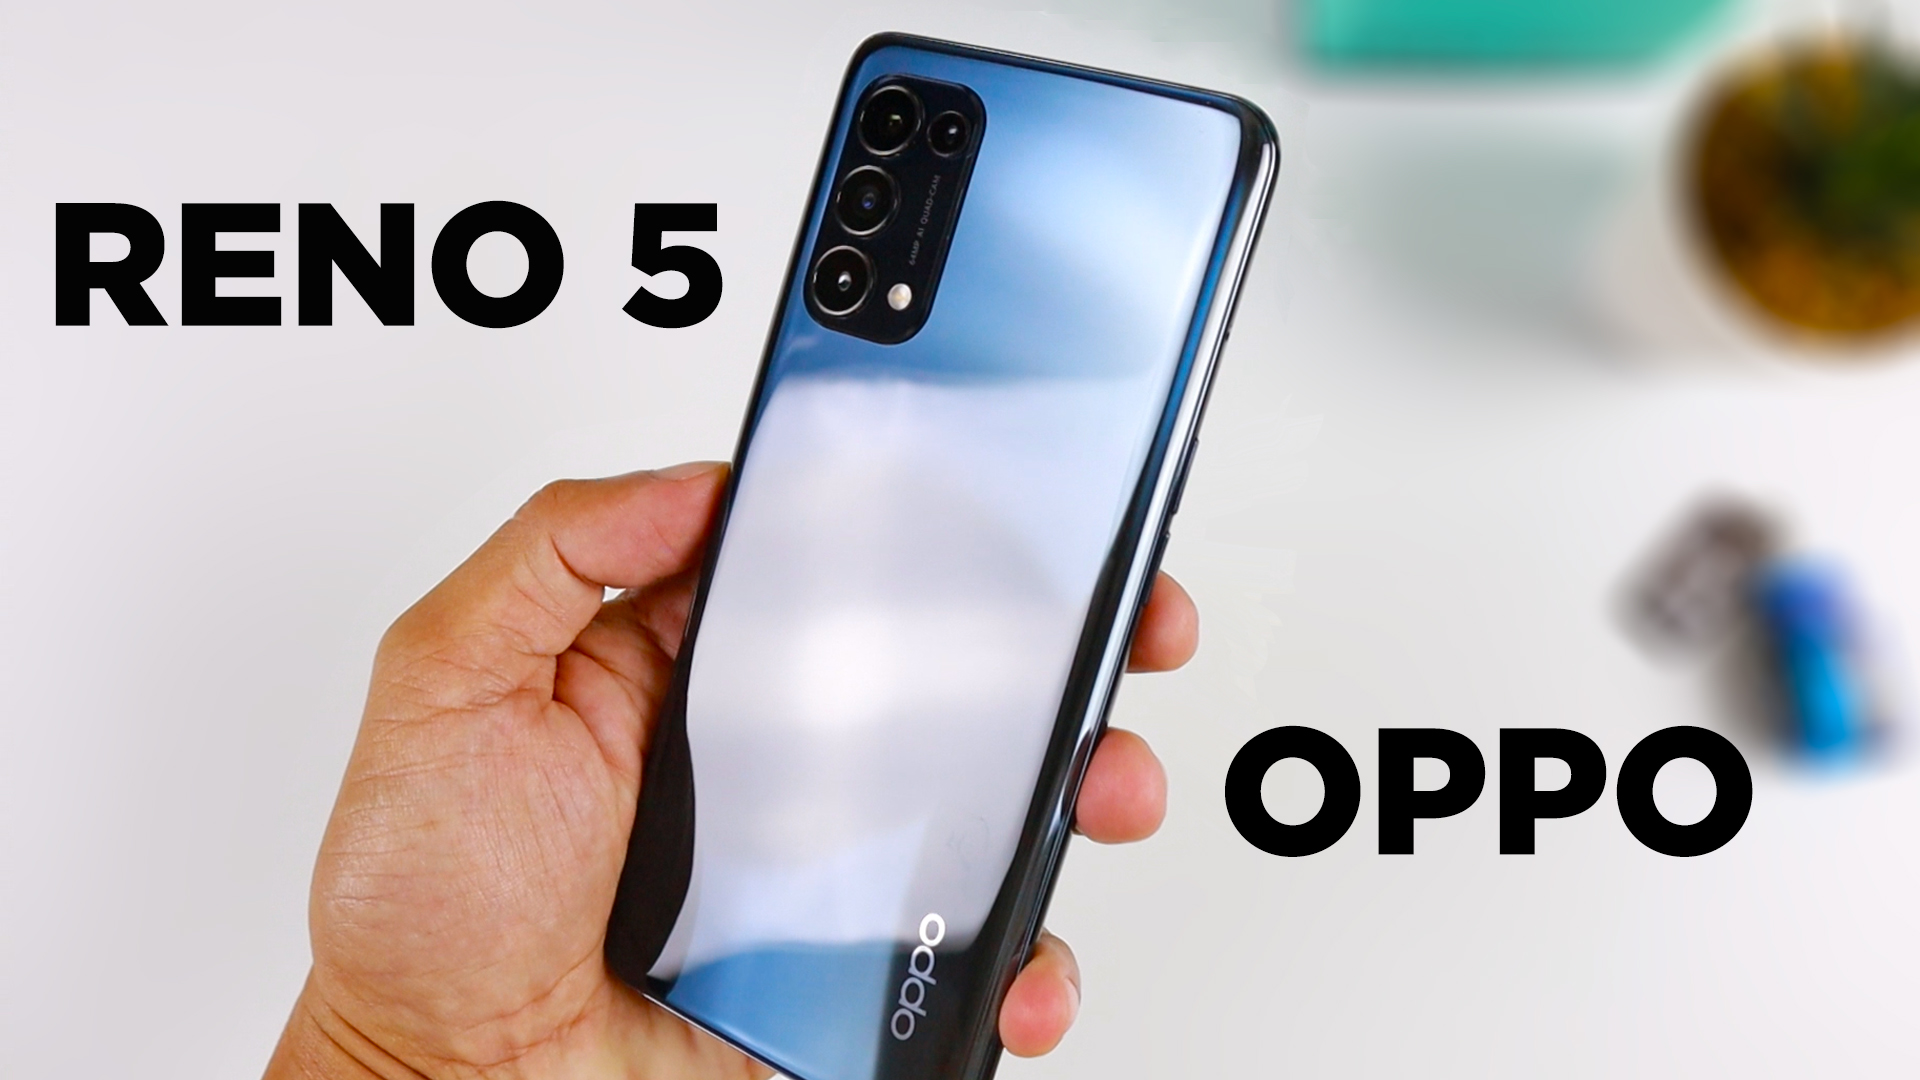 OPPO Reno 5 Unboxing and Camera Review - Zeibiz